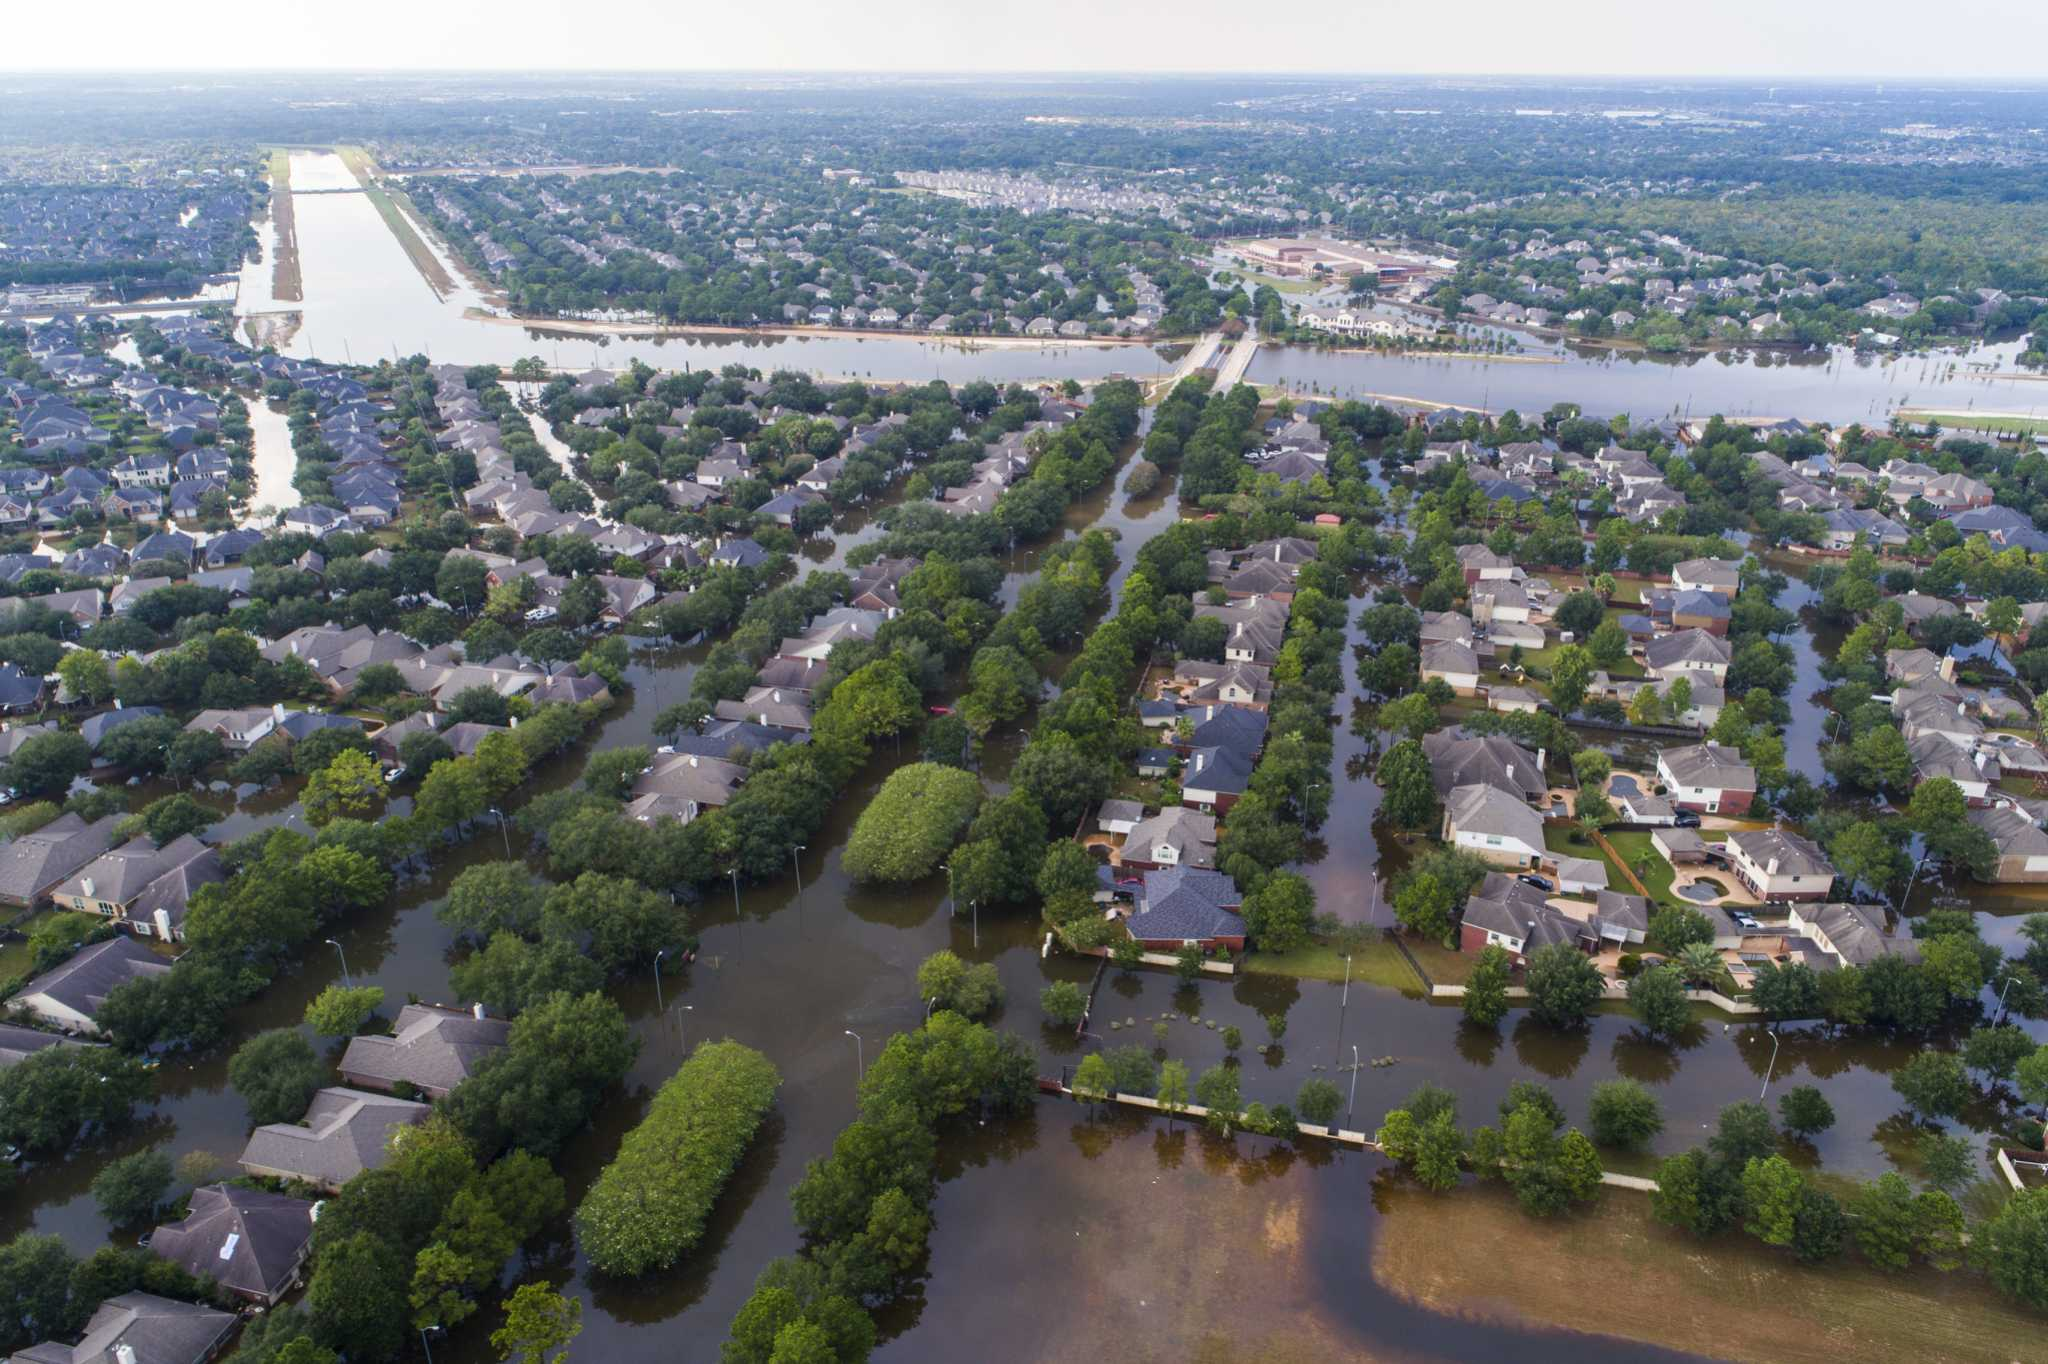 Many homeowners unaware they lived in reservoir 'flood pools